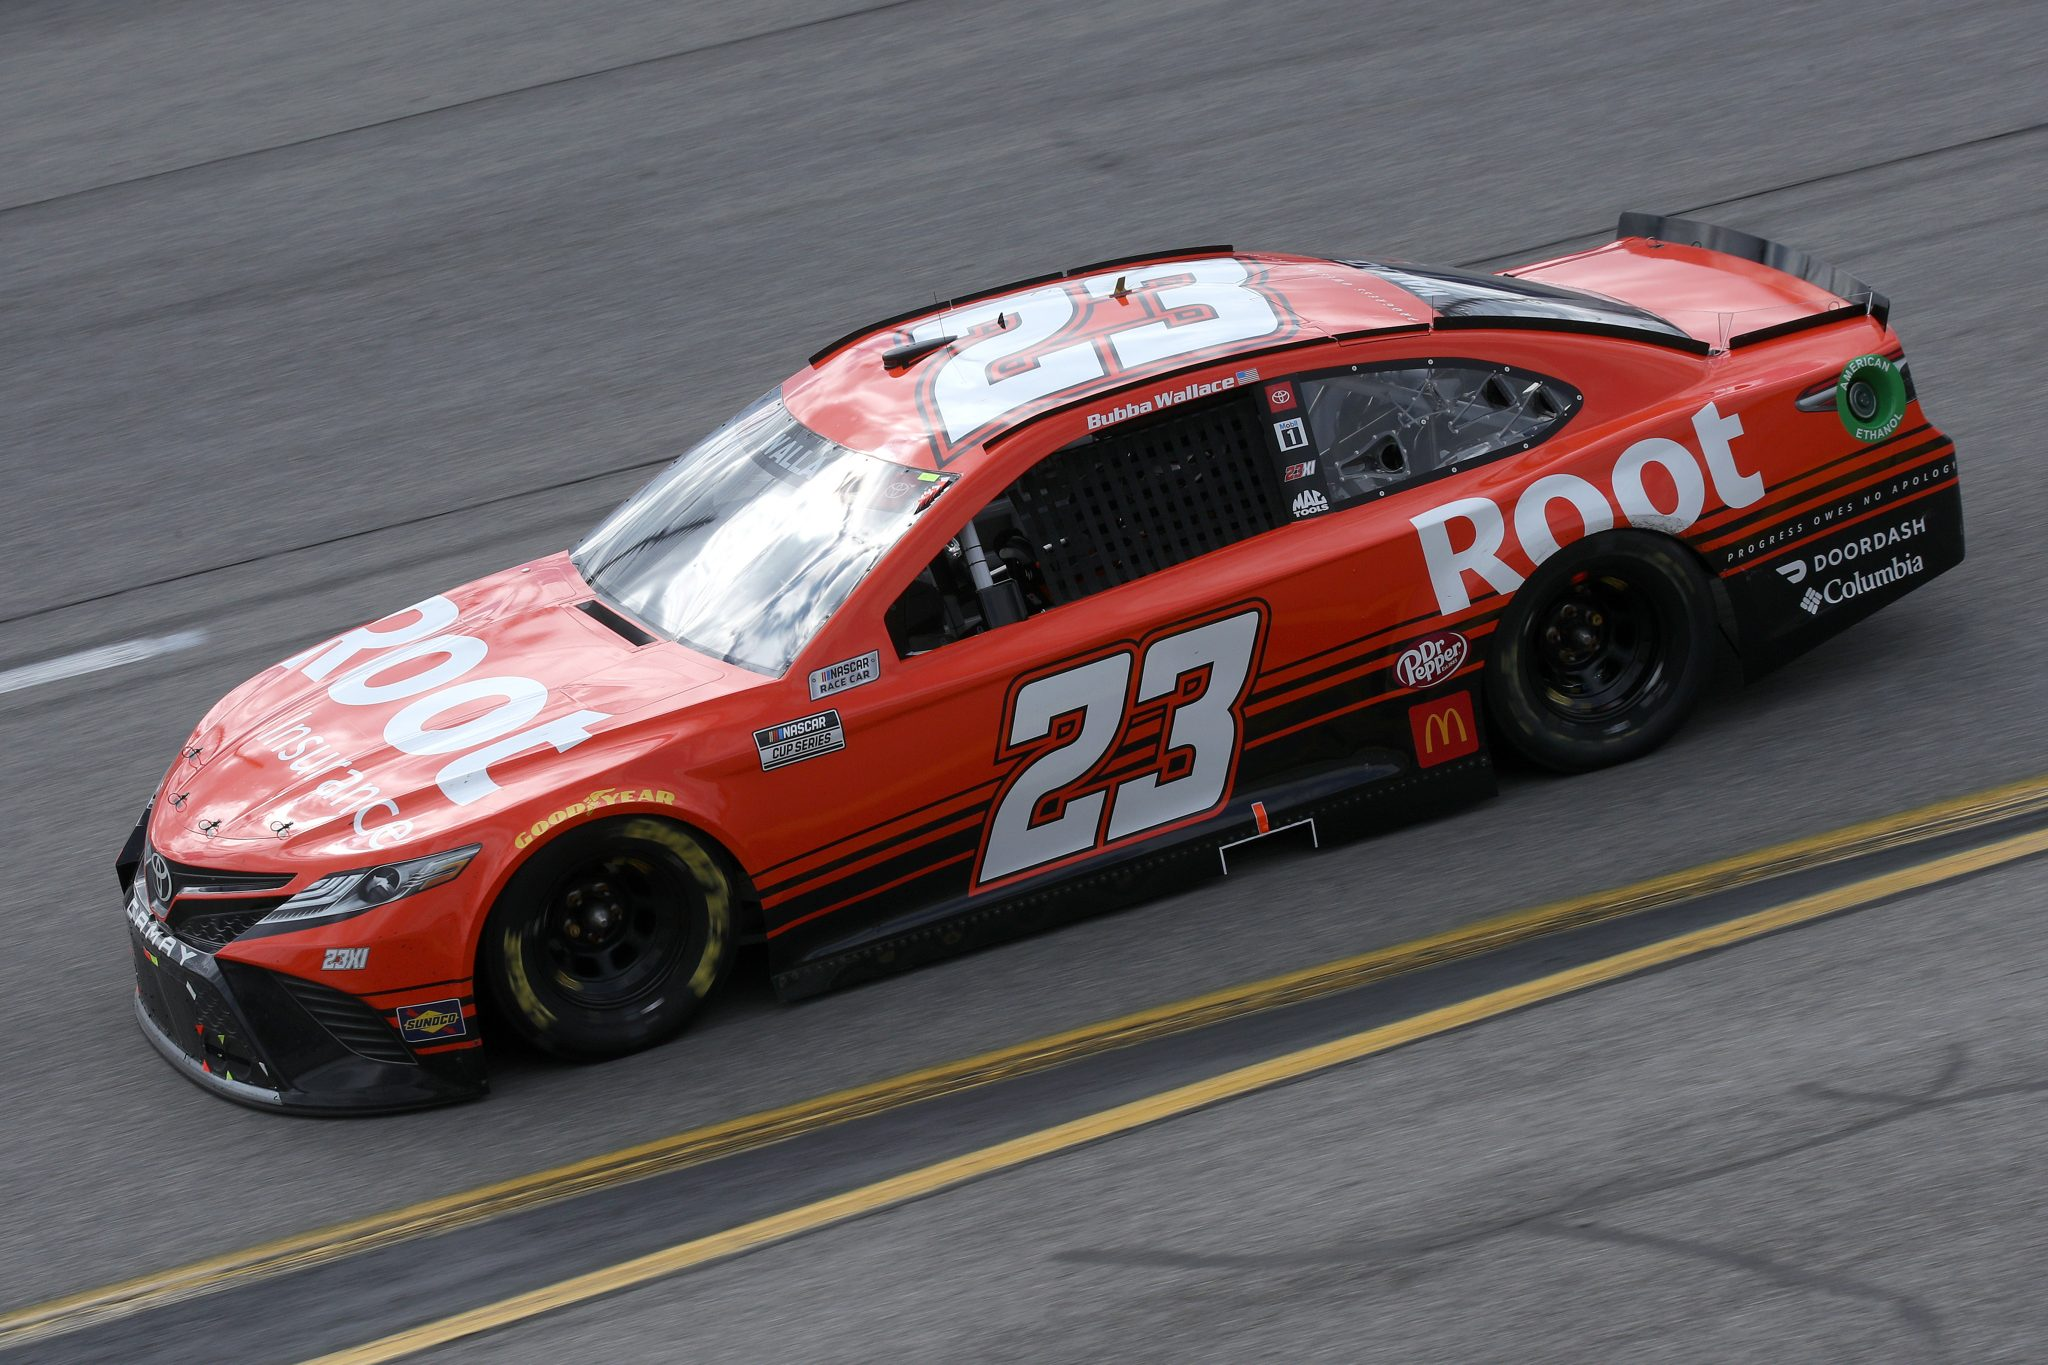 RICHMOND, VIRGINIA - APRIL 18: Bubba Wallace, driver of the #23 Root Insurance Toyota, drives during the NASCAR Cup Series Toyota Owners 400 at Richmond Raceway on April 18, 2021 in Richmond, Virginia. (Photo by Sean Gardner/Getty Images) | Getty Images